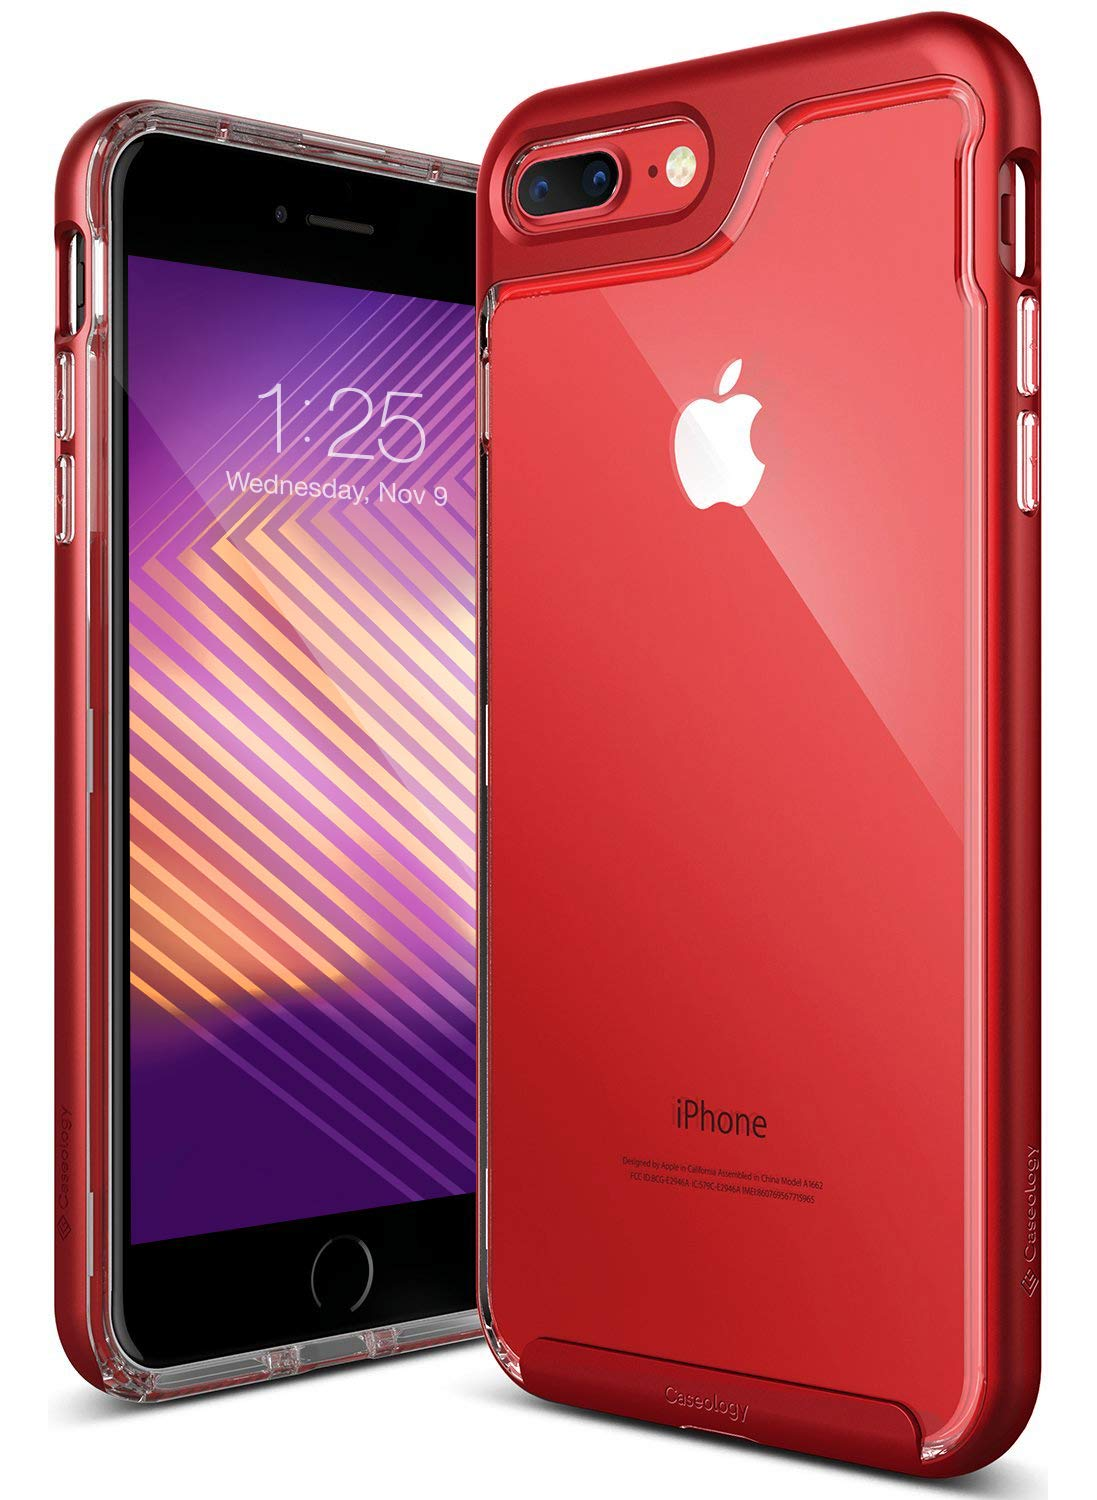 Caseology Skyfall Series iPhone 8 Plus / 7 Plus Cover Case Clear Slim Protective Apple iPhone 8 Plus (2017) / iPhone 7 Plus (2016) - Red